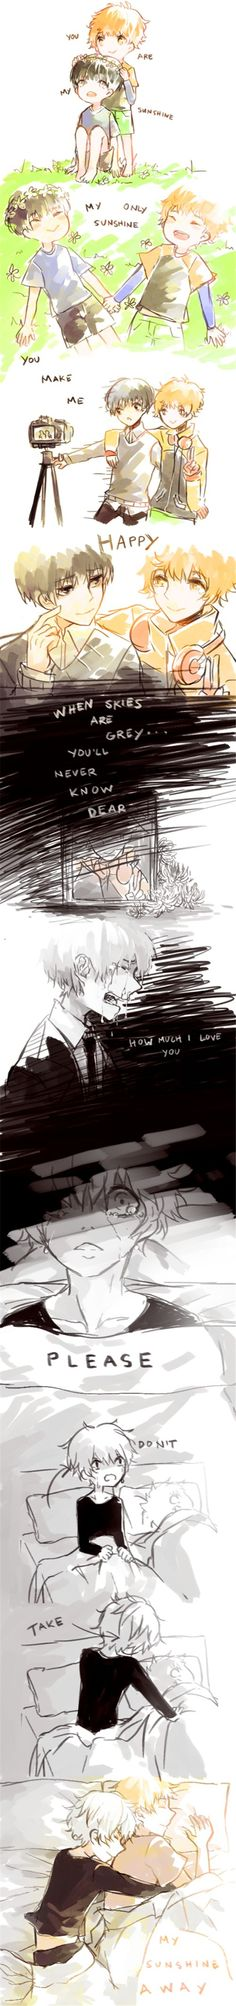 Hide and Kaneki. ^^<<I HAD A MENTAL BREAK DOWN AT SCHOOL!!! THIS IS TOO DEPRESSING!!!: